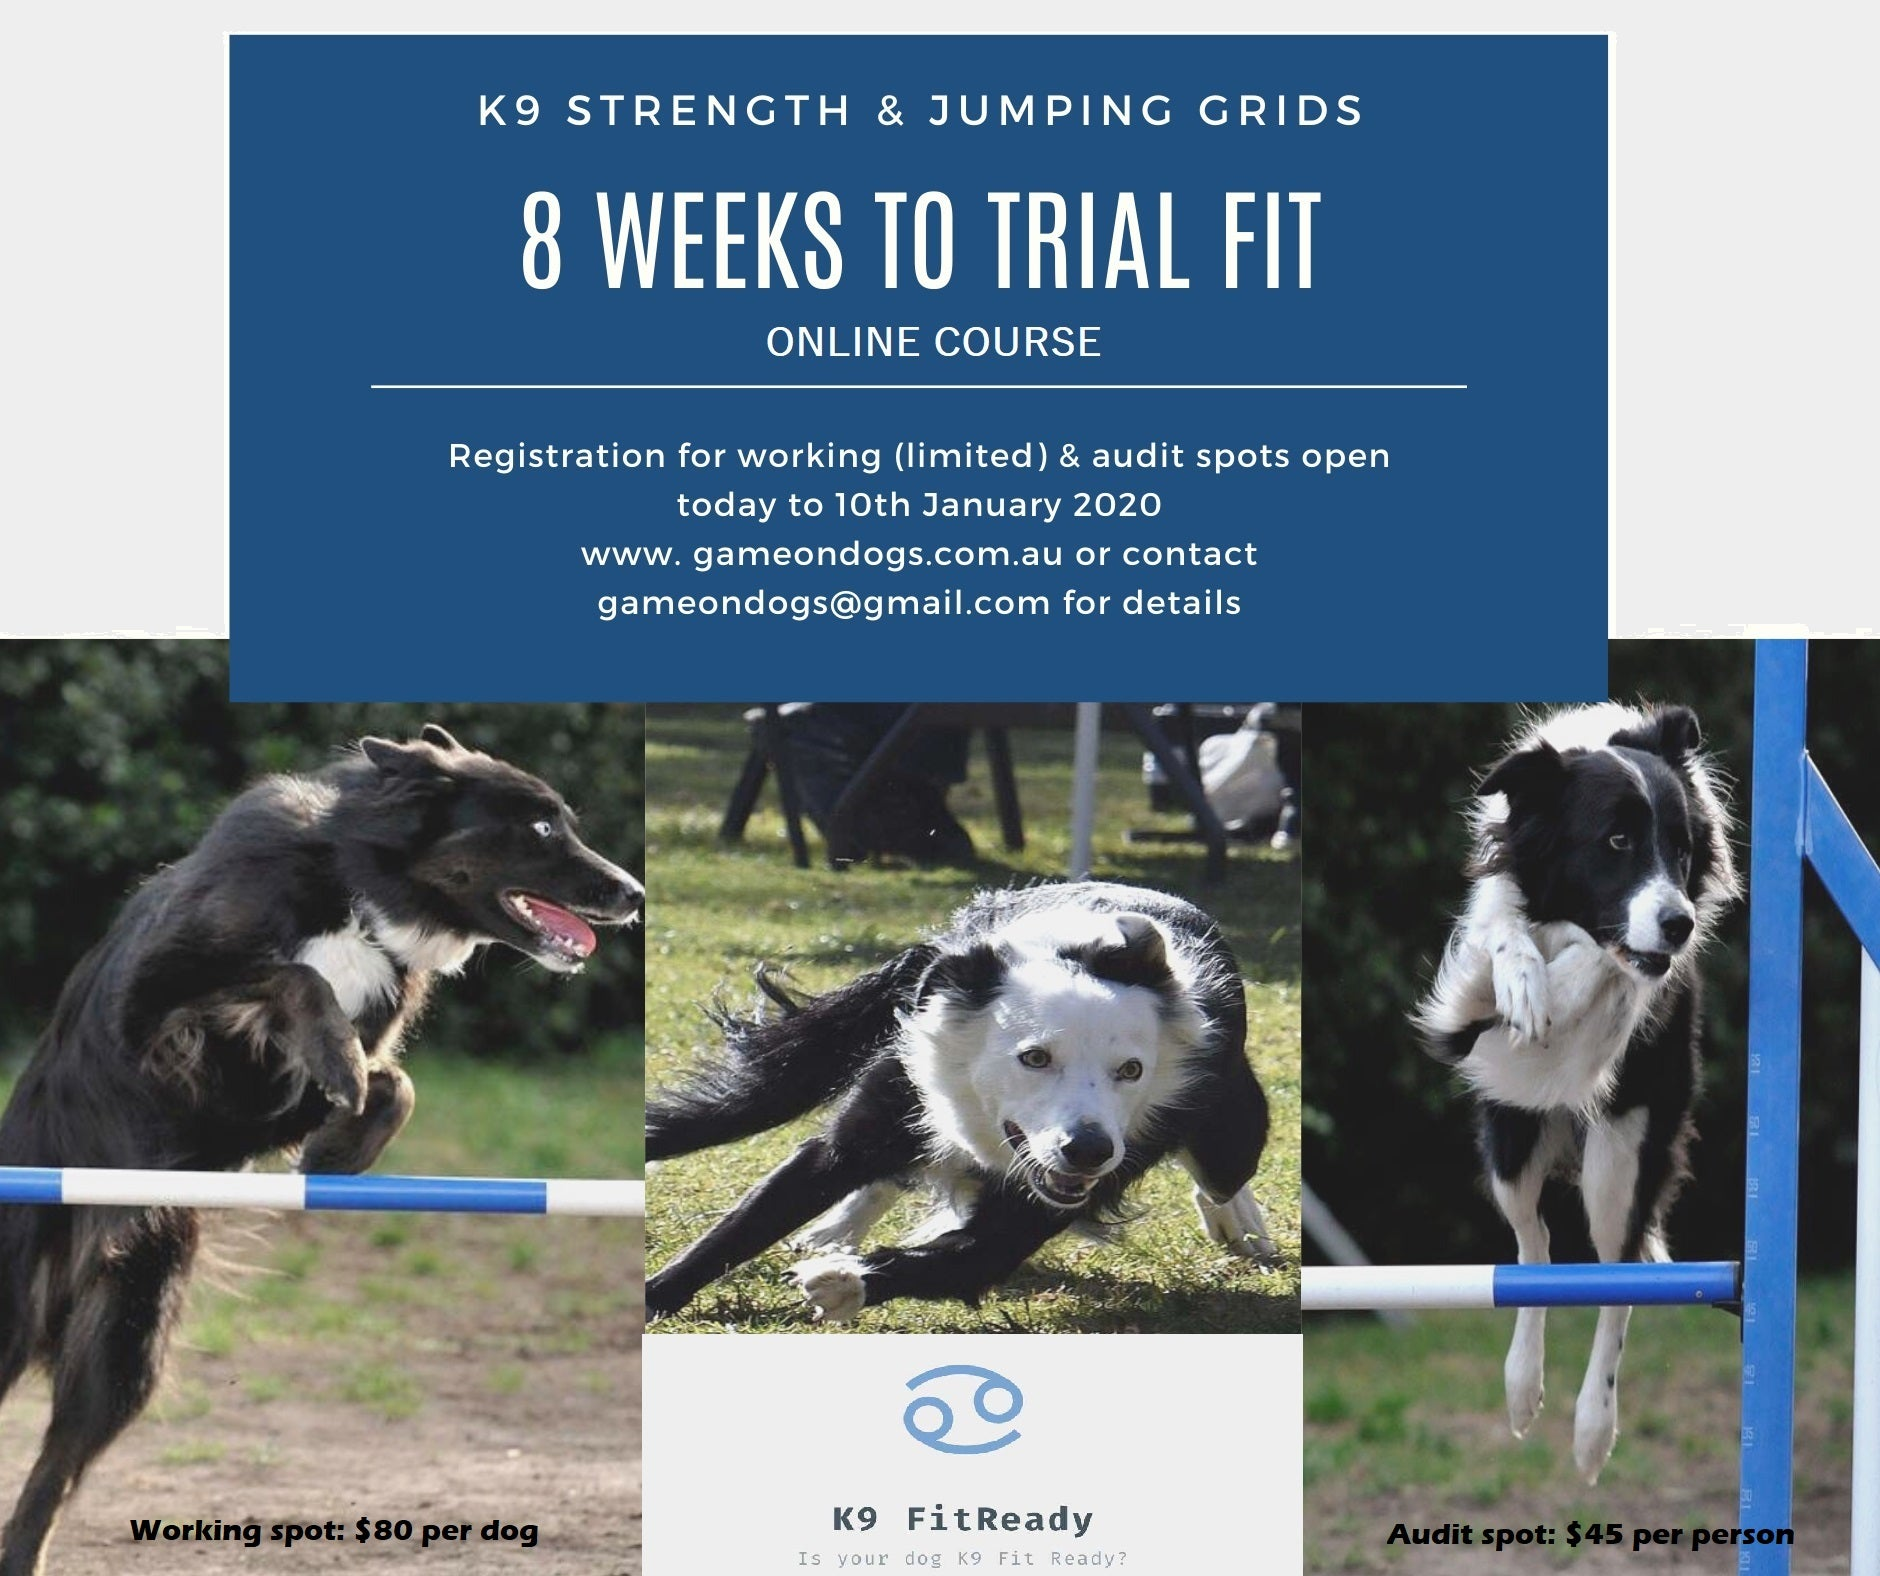 K9 FITREADY 8 WEEKS TO TRIAL FIT FITNESS PROGRAM